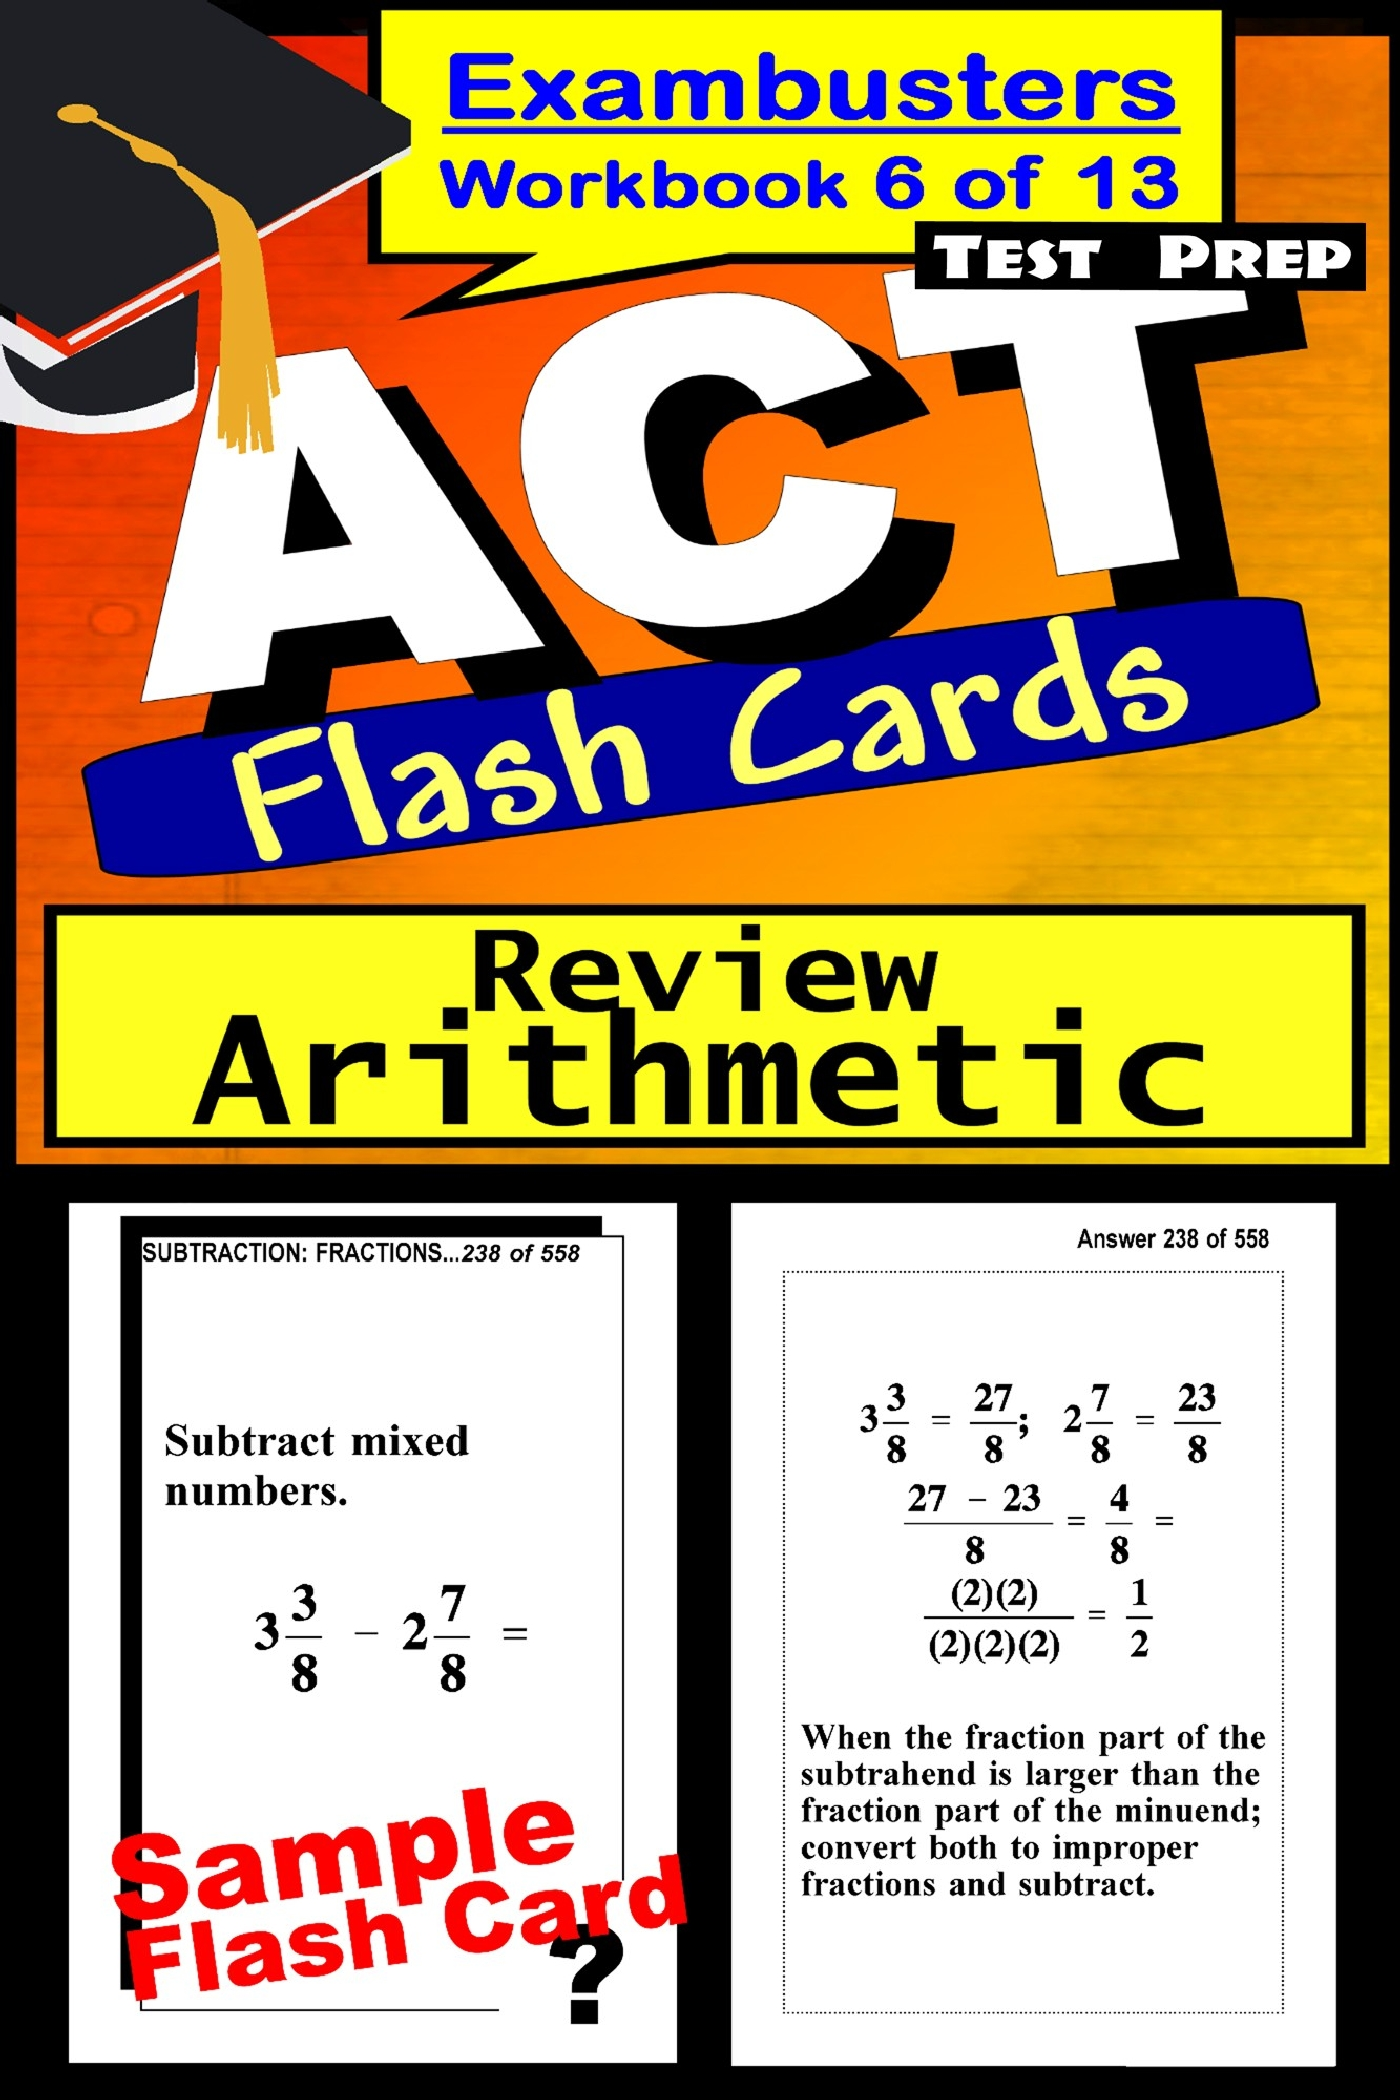 ACT Test Prep Arithmetic Review--Exambusters Flash Cards--Workbook 6 of 13: ACT Exam Study Guide